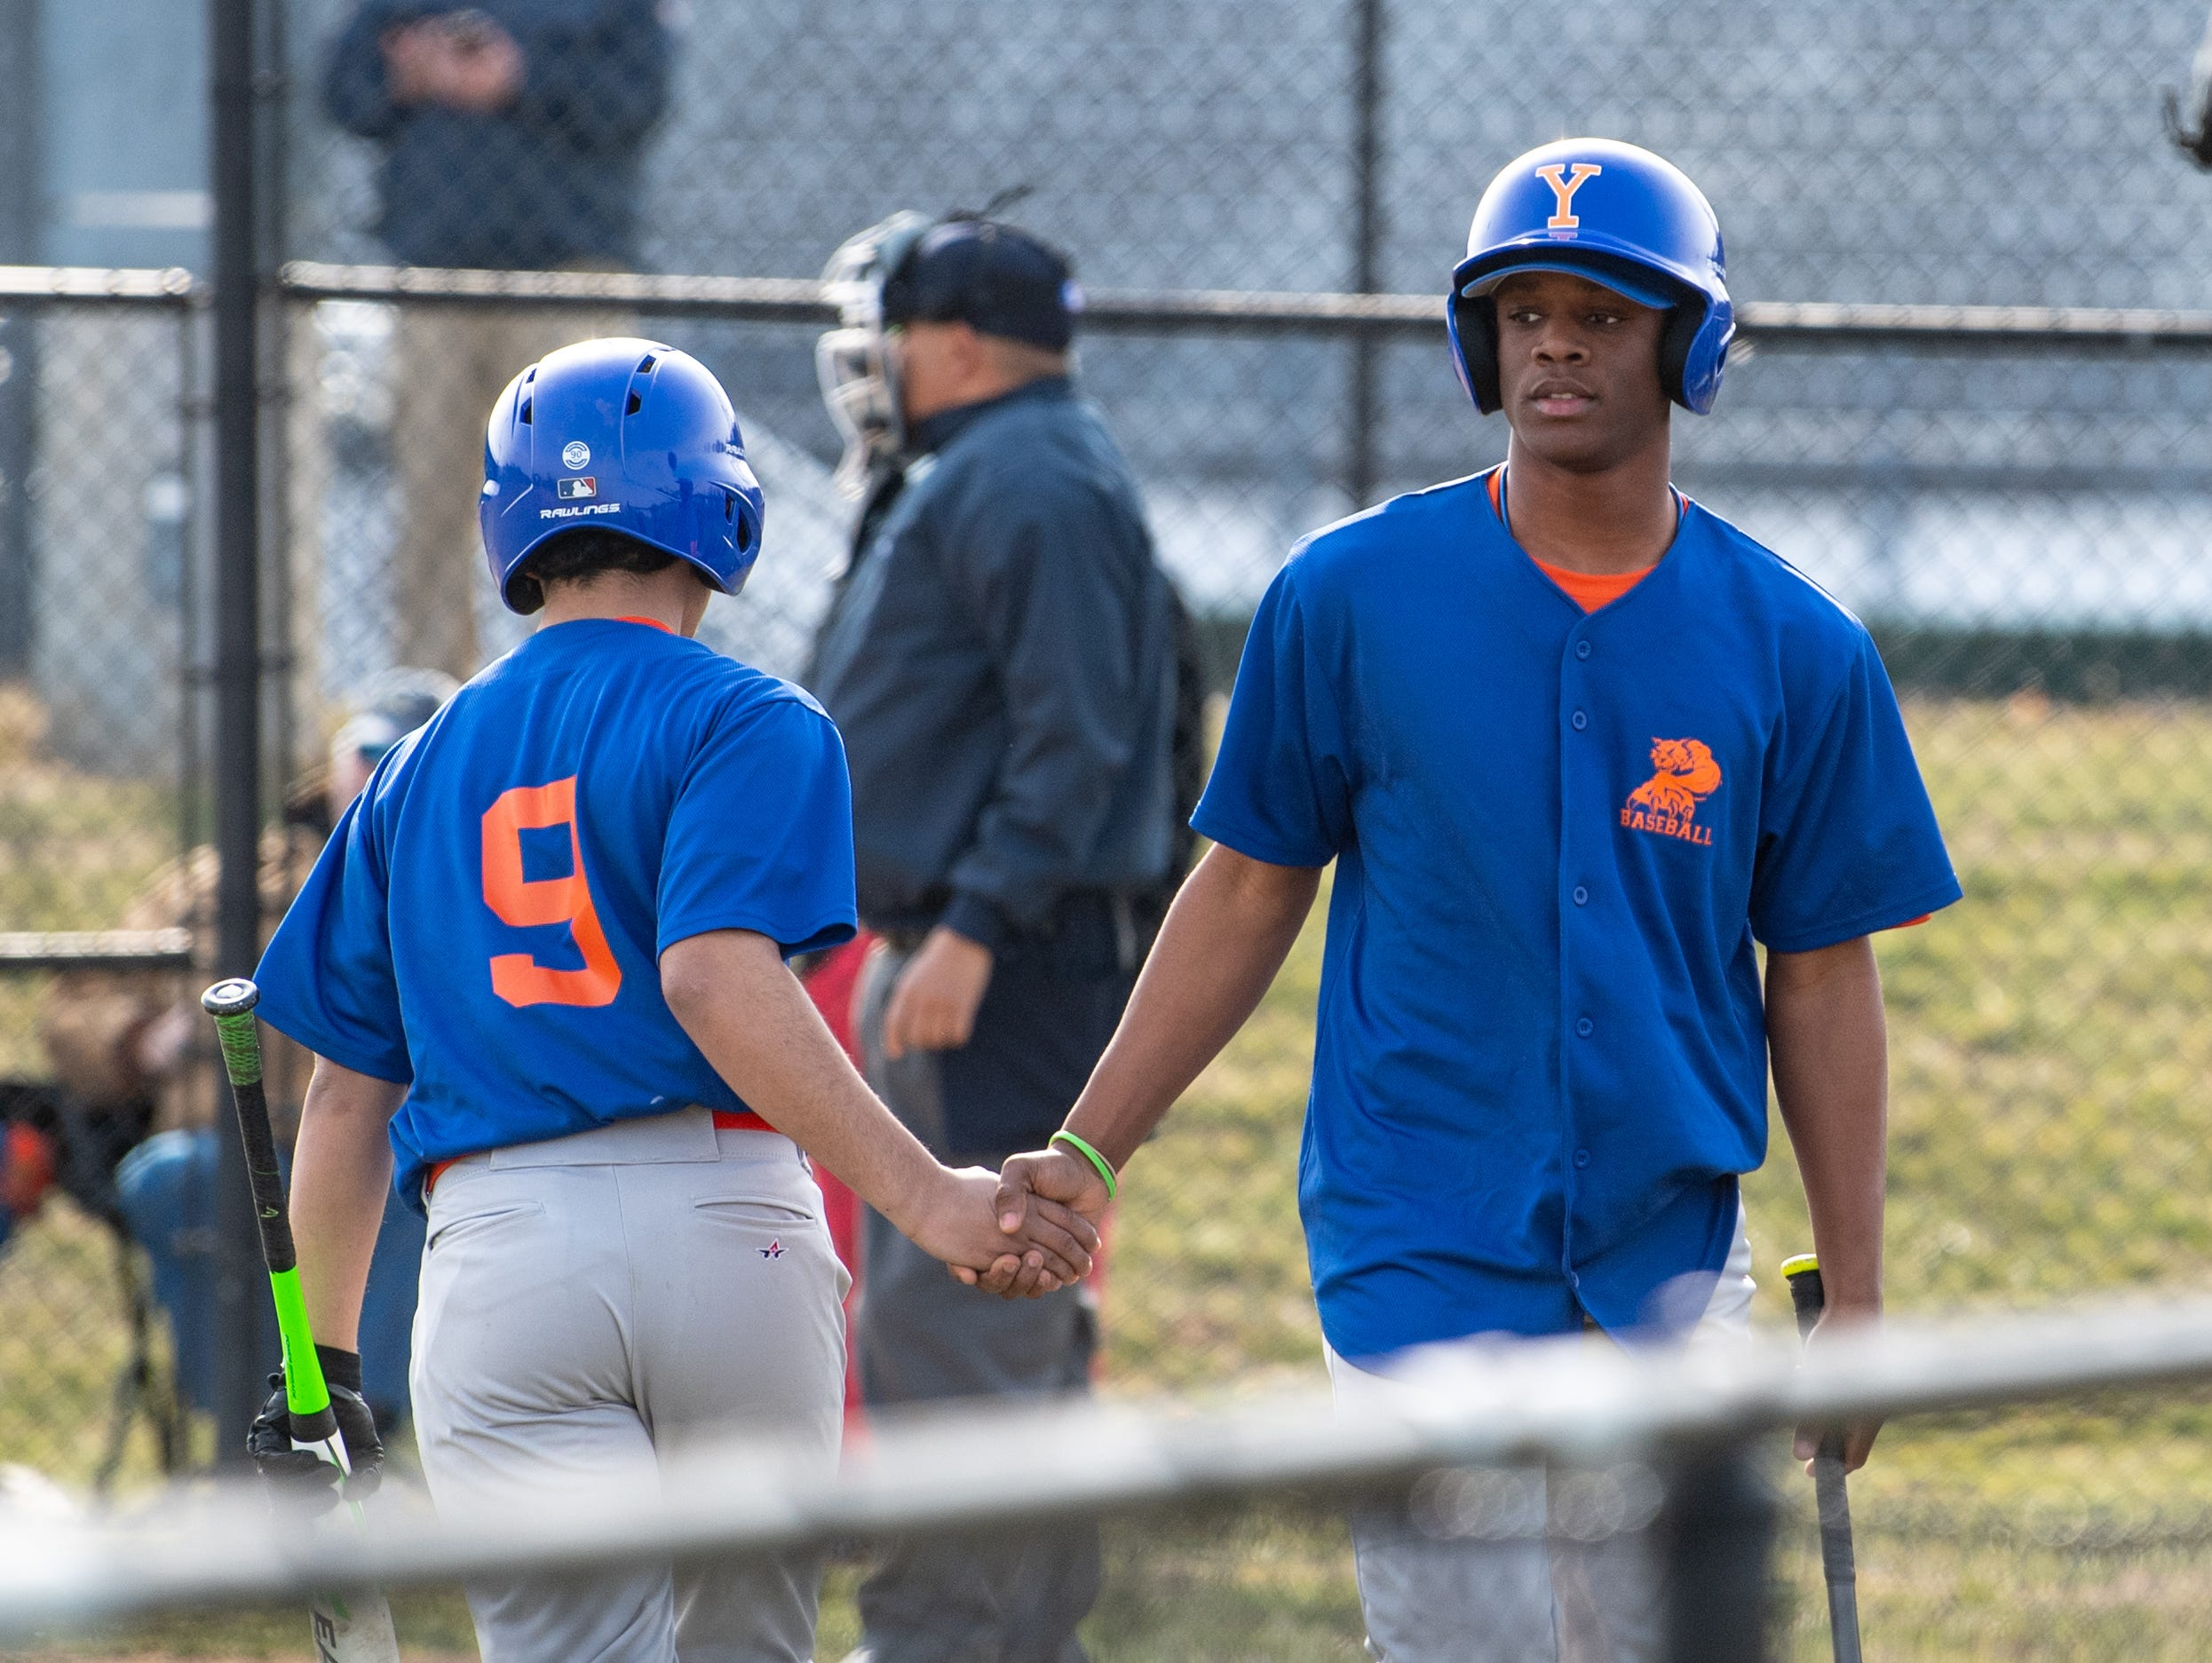 Marcellus John (15) heads to the bench after striking out during York High's scrimmage against Steel High, March 20, 2019 at Smalls Athletic Field.